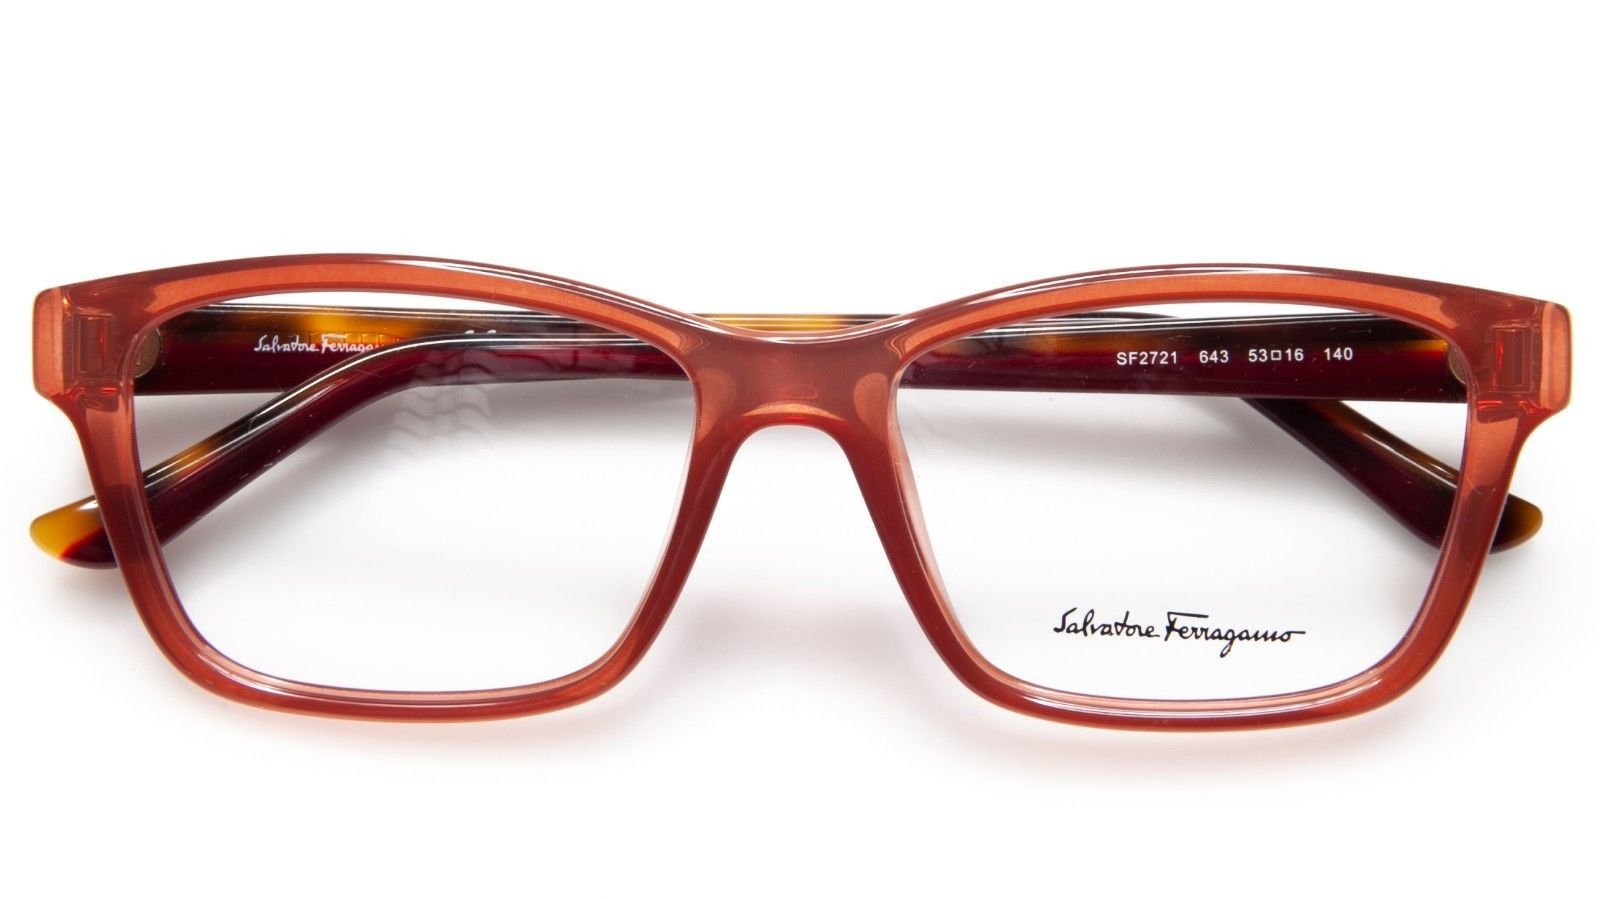 7ef1563f8f ... NEW Salvatore Ferragamo SF2721 643 ANTIQUE ROSE EYEGLASSES 53-16-140  B38mm Italy ...